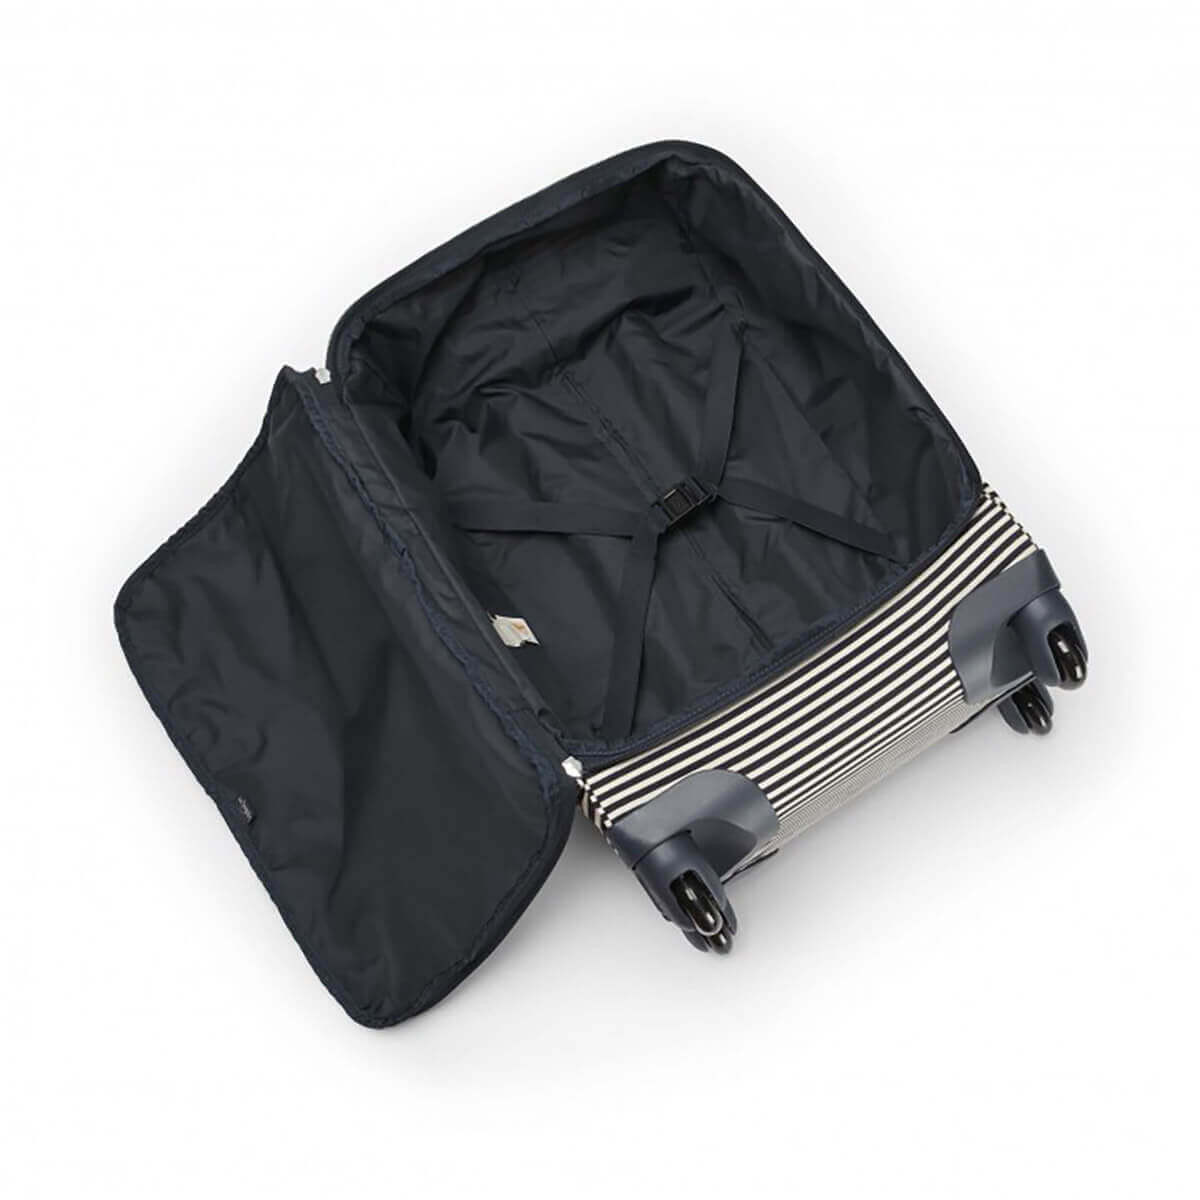 Kipling - Basic - Travel (Wheeled) - Darcey - Medium Cabin